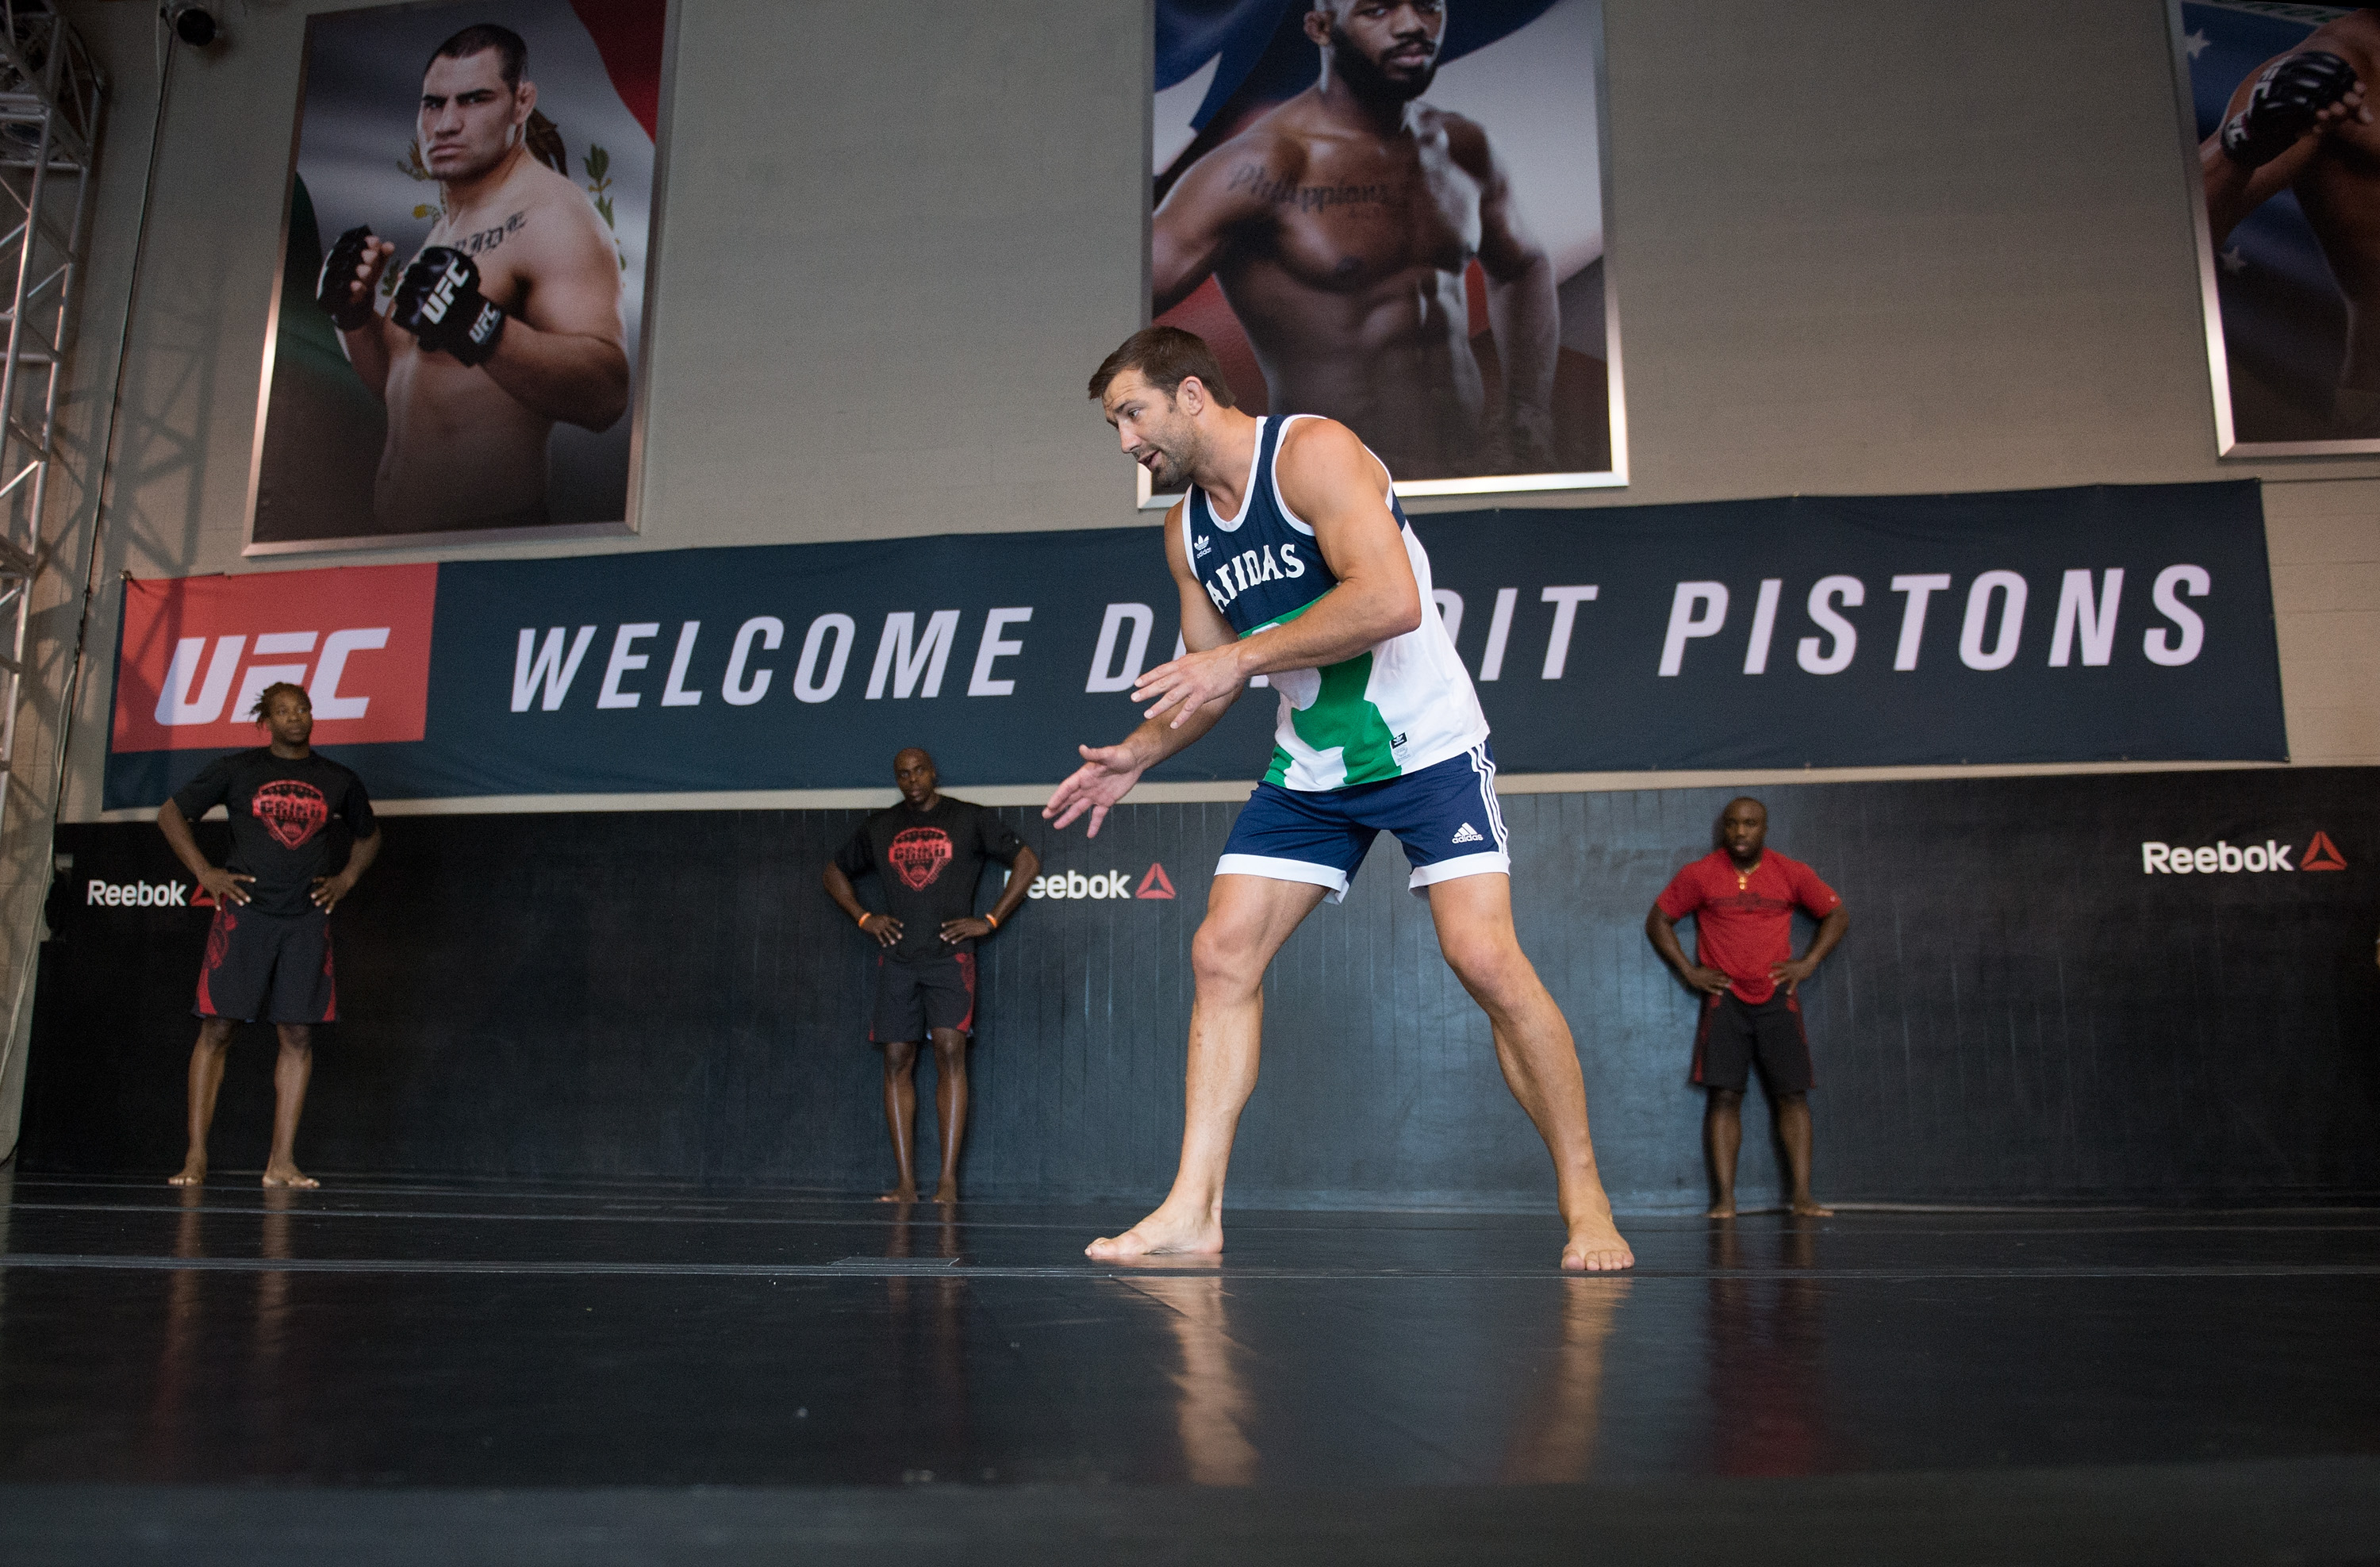 Detroit Pistons Train With Stars of the UFC